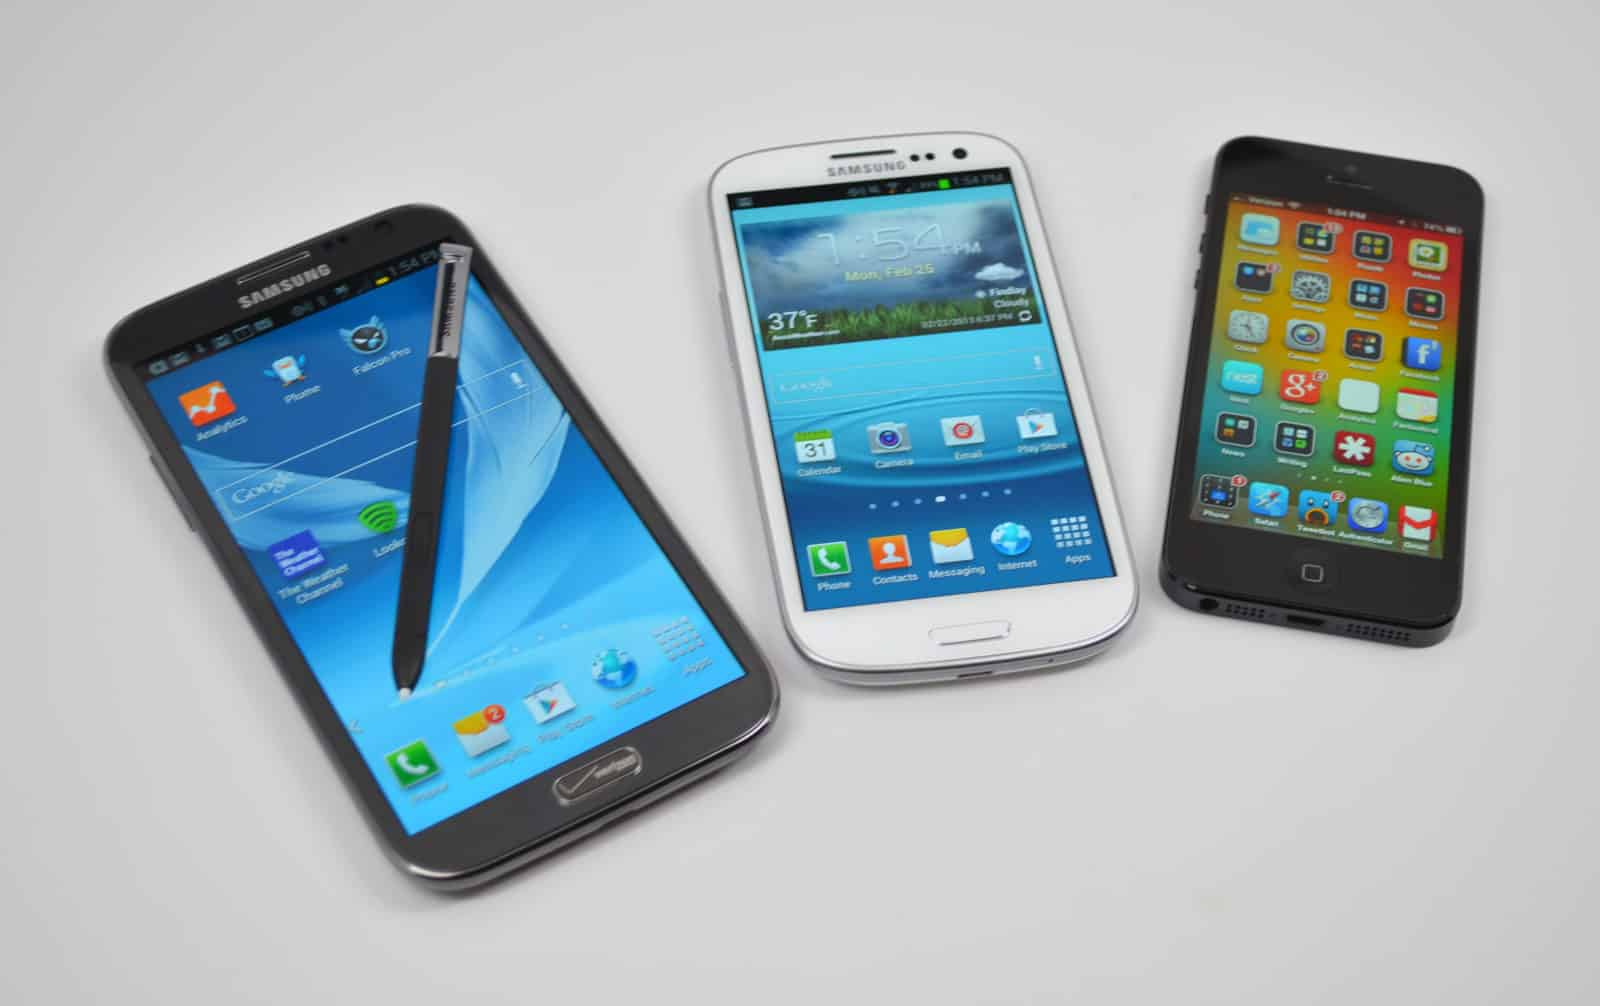 Samsung-Galaxy-Note-2-vs-Galaxy-S3-vs-iPhone-5-6